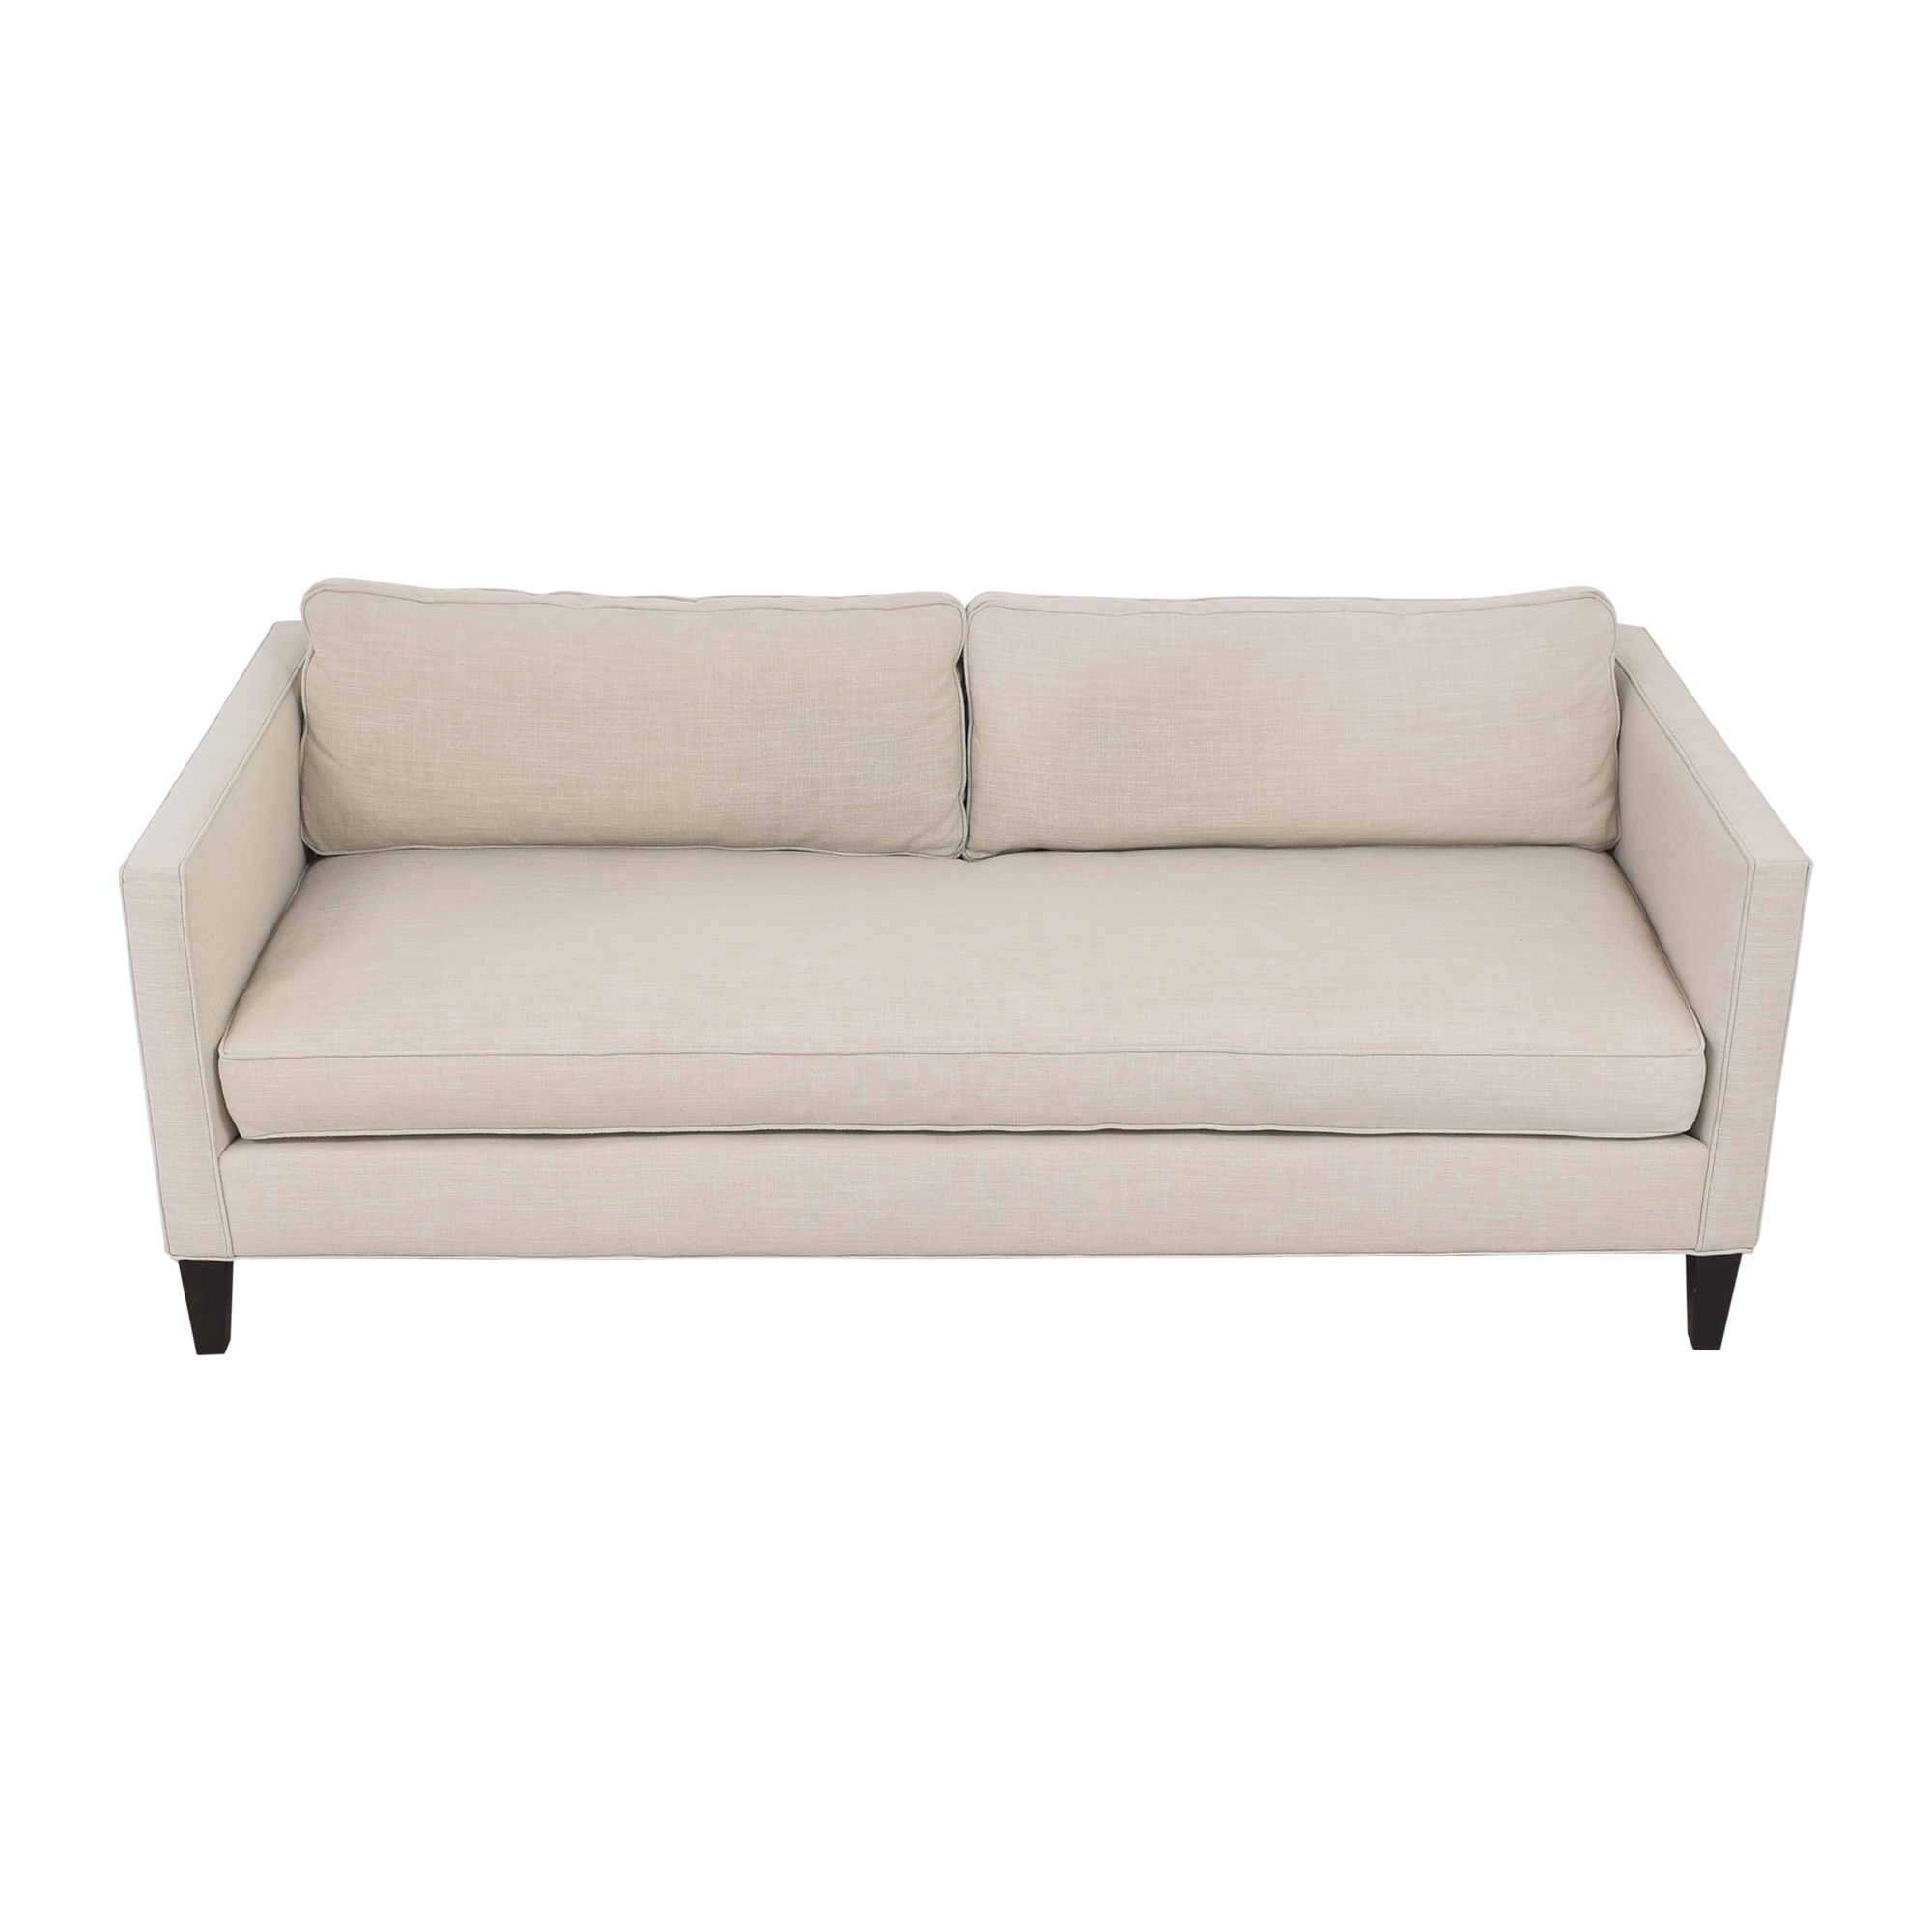 West Elm West Elm Dunham Sofa ct